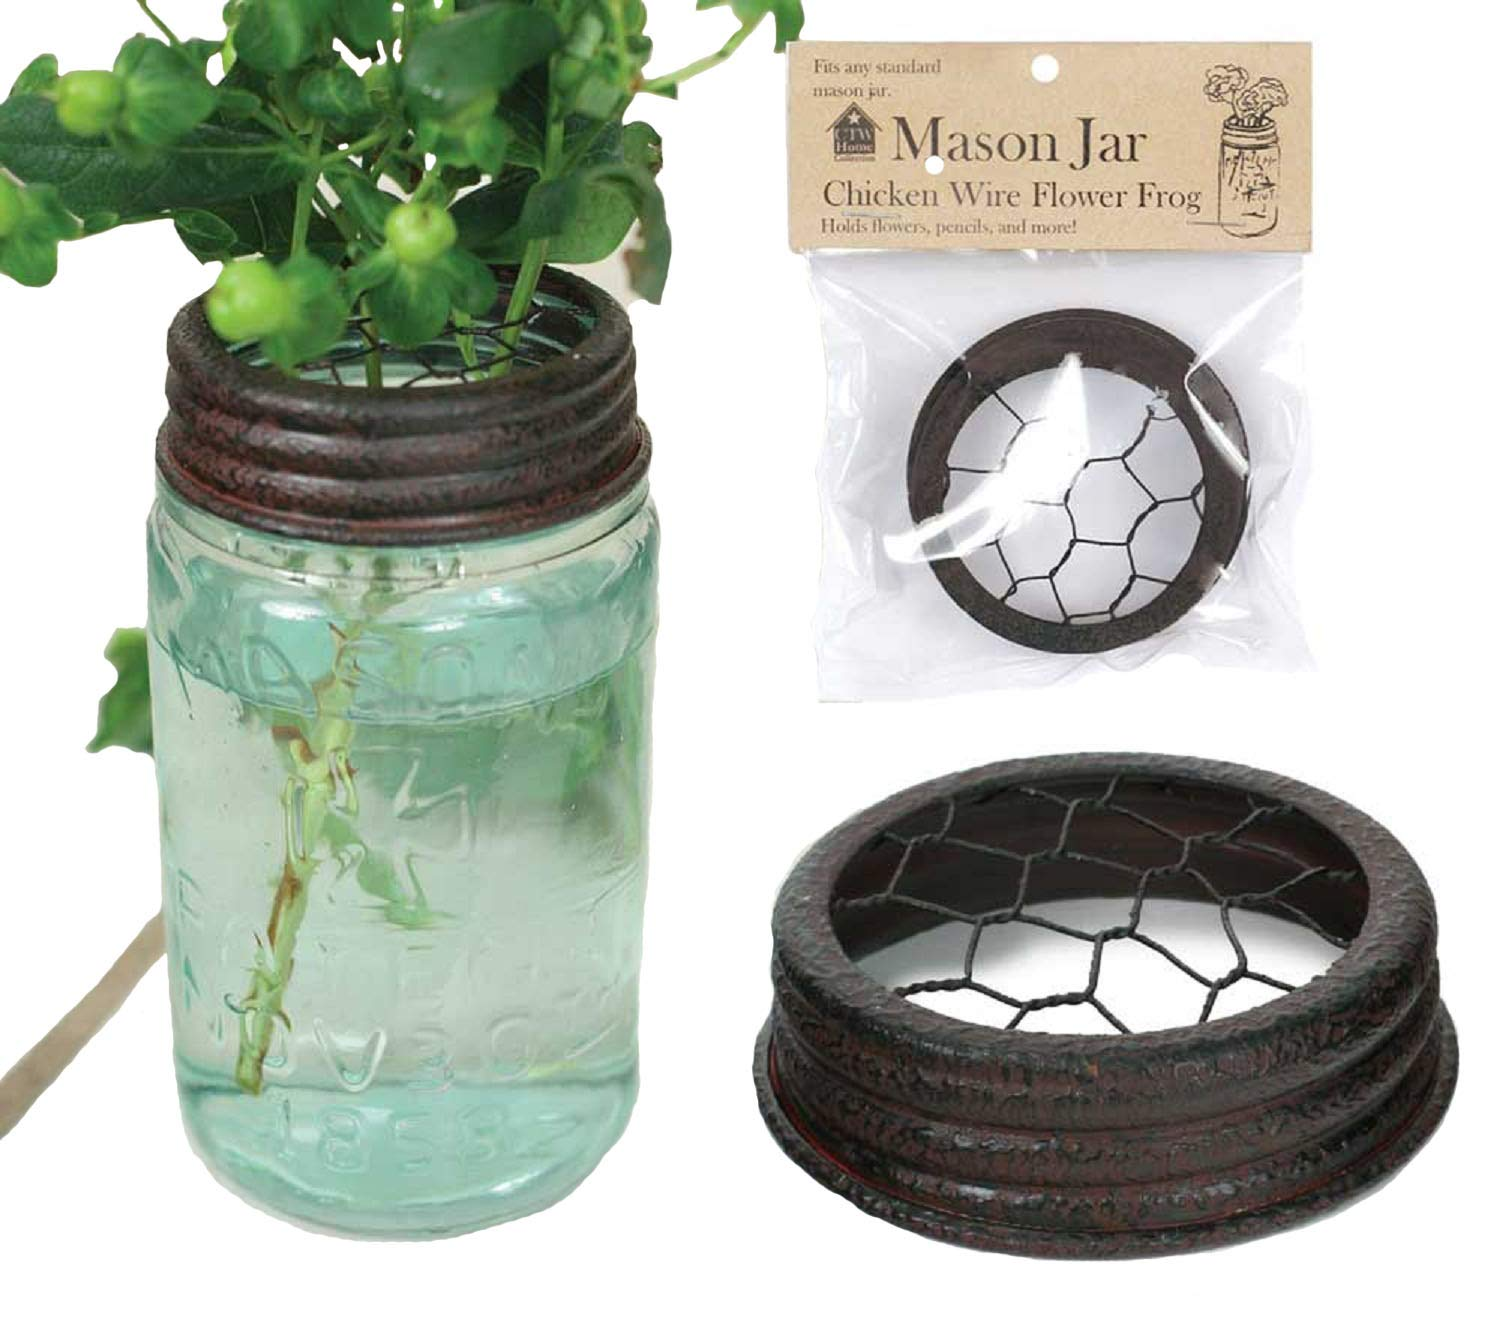 CTW Home Collection Mason Jar Chicken Wire Flower Frog Lid Colonial Tin Works 370003